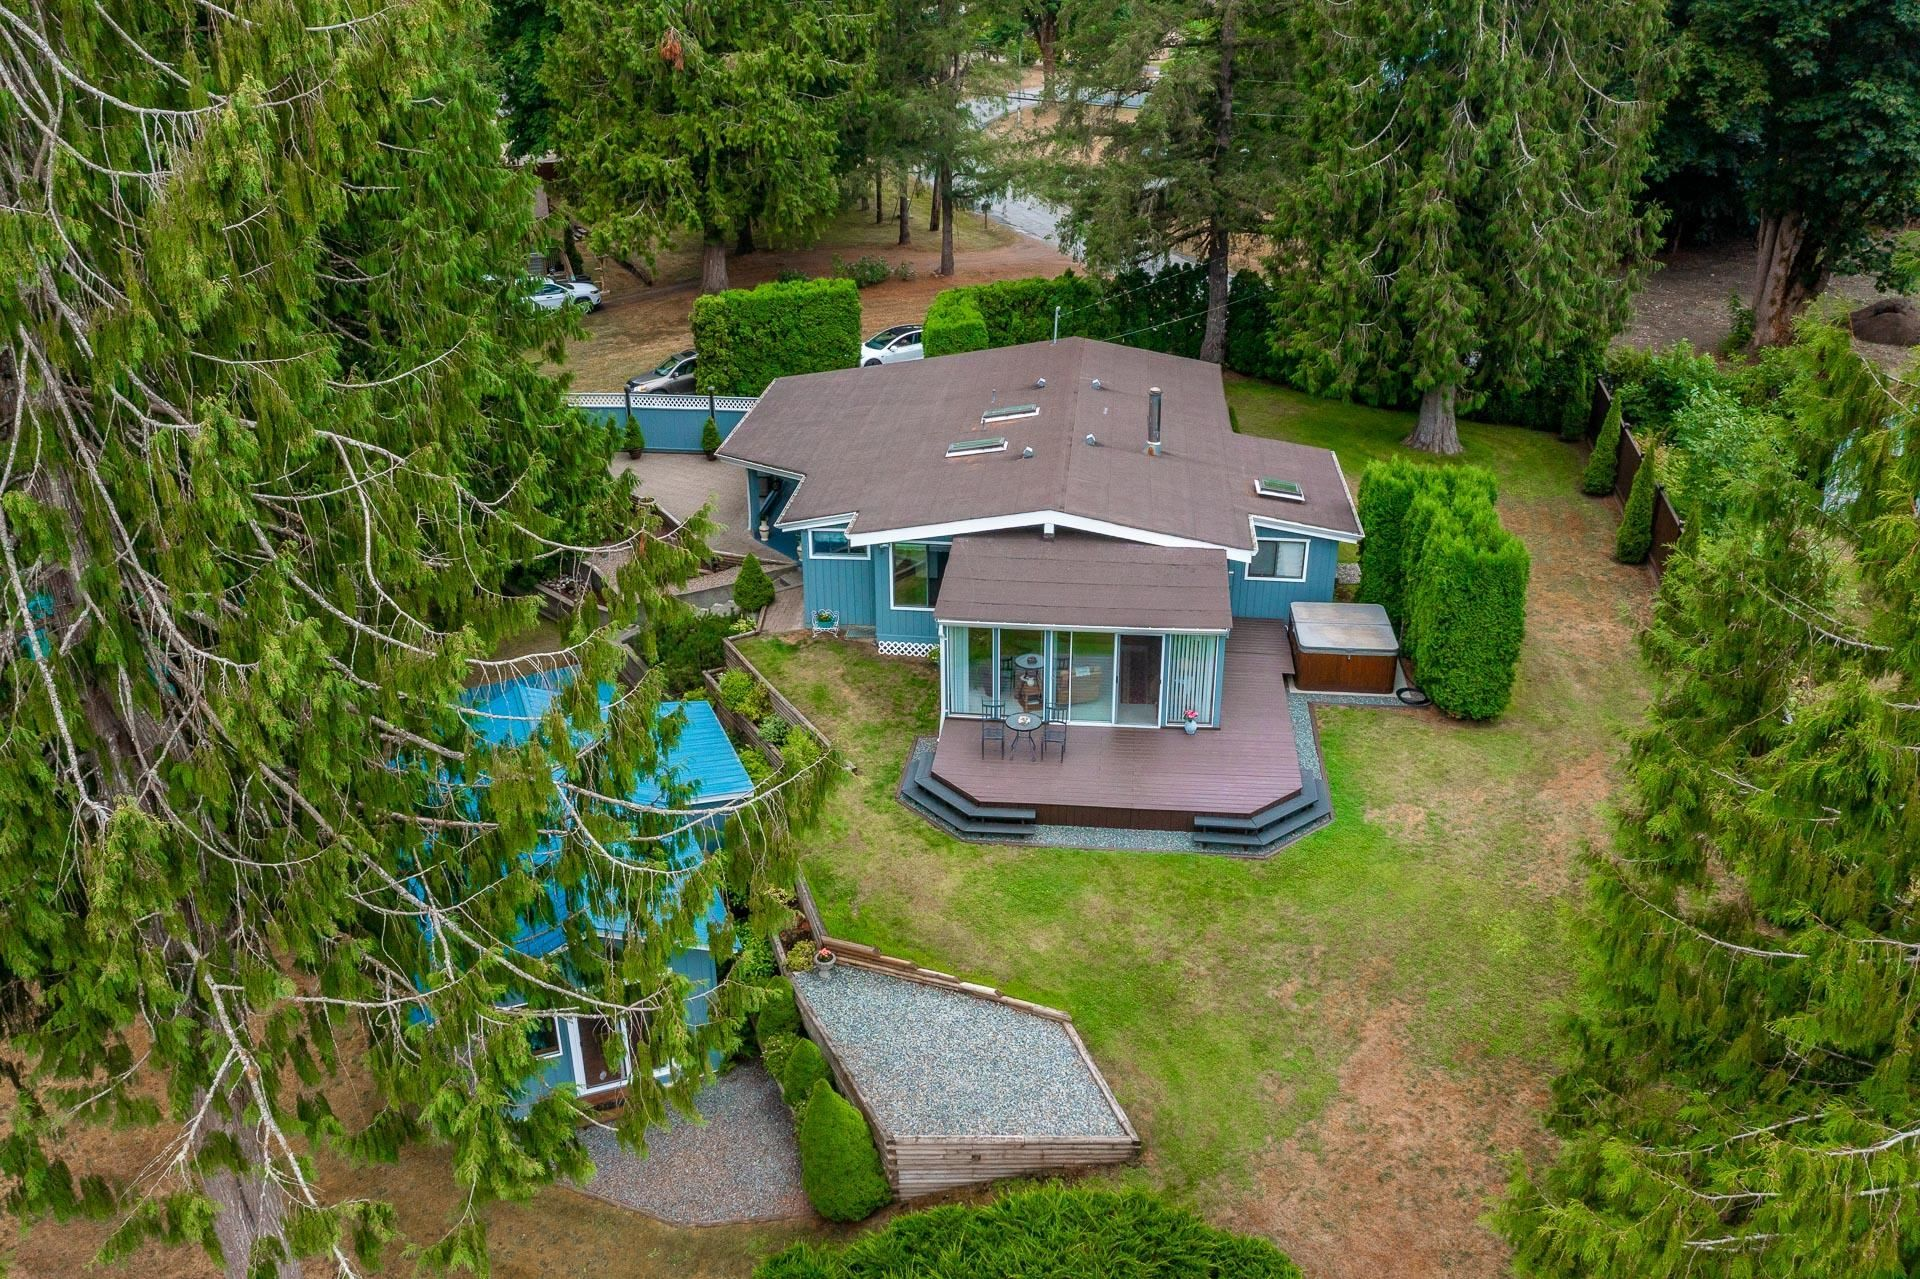 """Main Photo: 50598 O'BYRNE Road in Chilliwack: Chilliwack River Valley House for sale in """"Slesse Park/Chilliwack River Valley"""" (Sardis)  : MLS®# R2609056"""